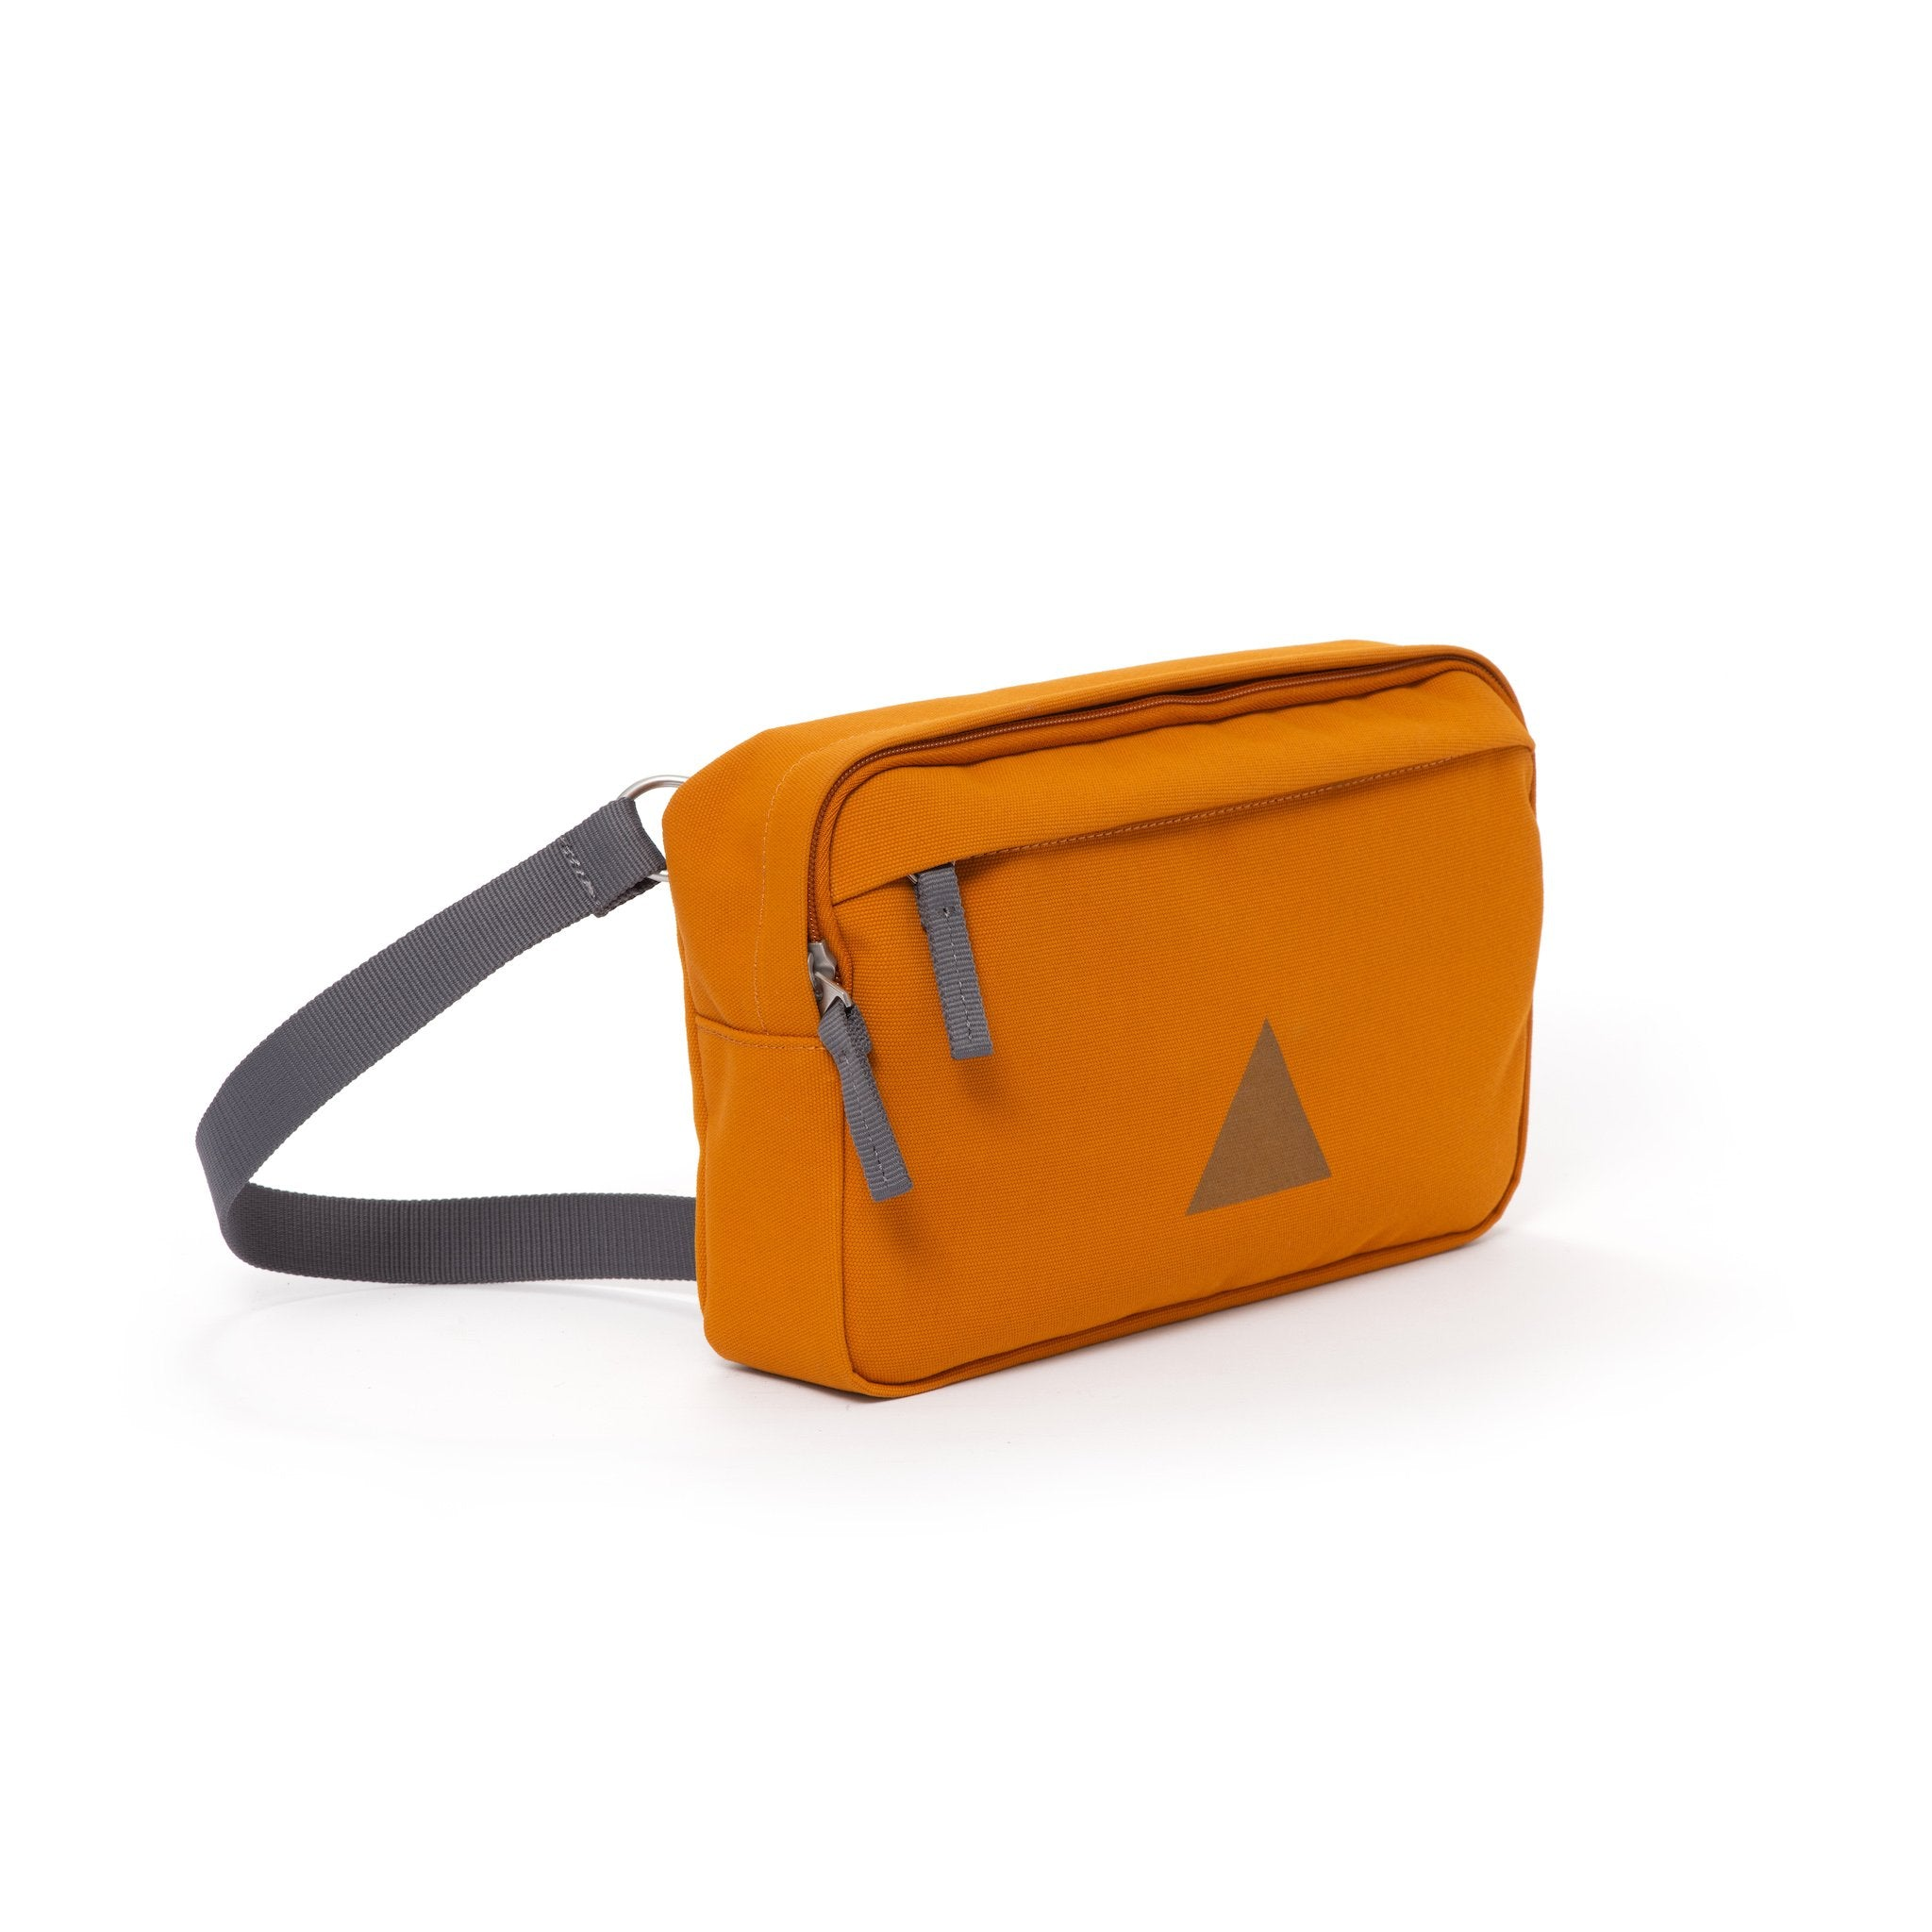 Orange canvas shoulder bag with zip pockets and webbing strap.